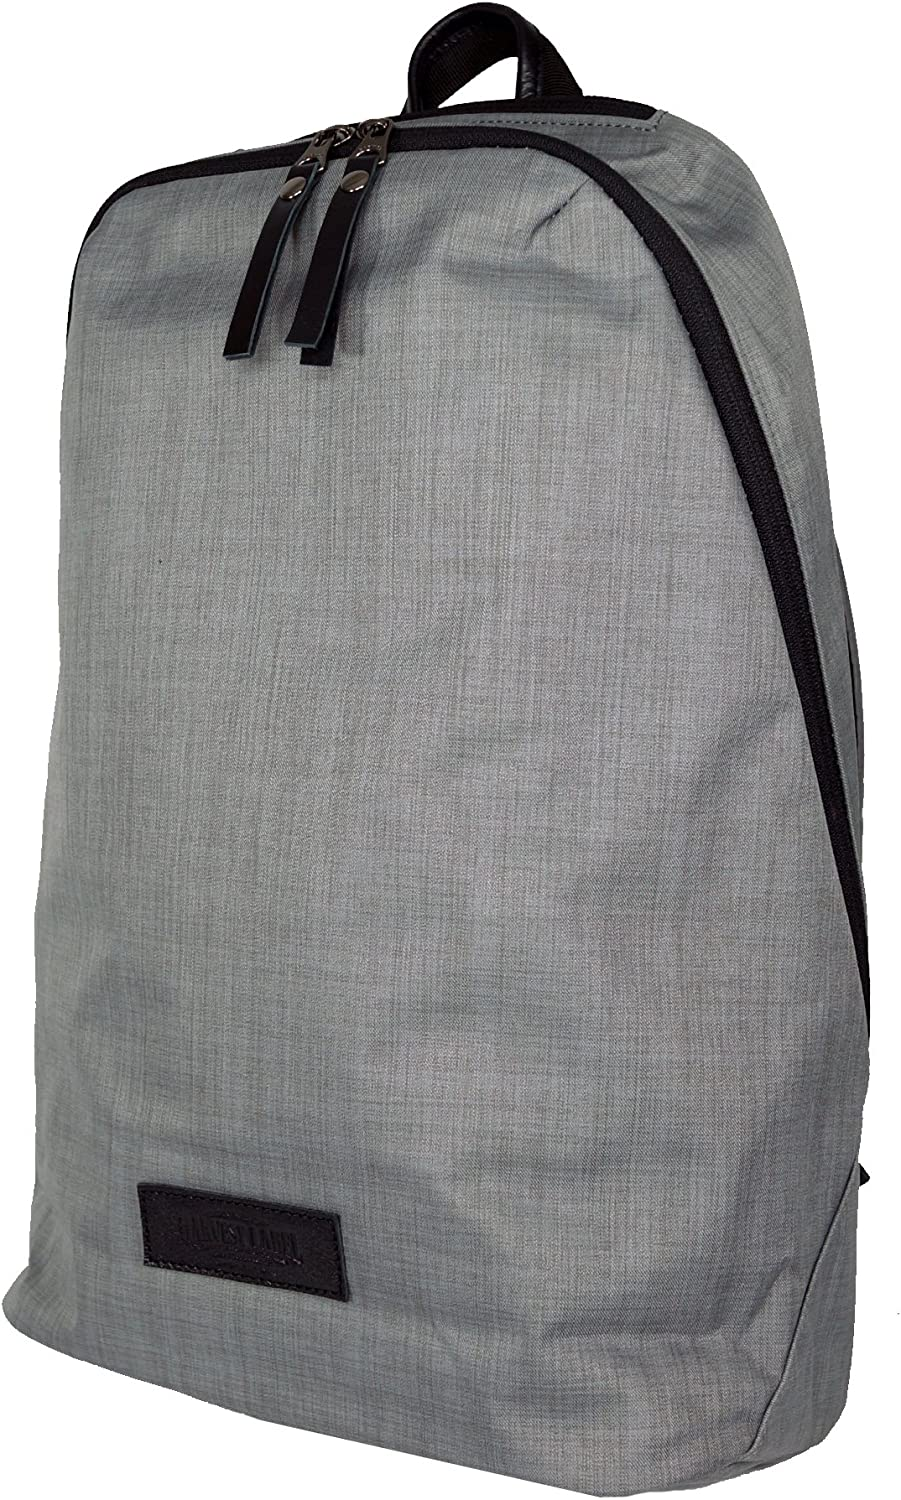 Harvest Label Connect Minimalist Archer Laptop Backpack (Grey)